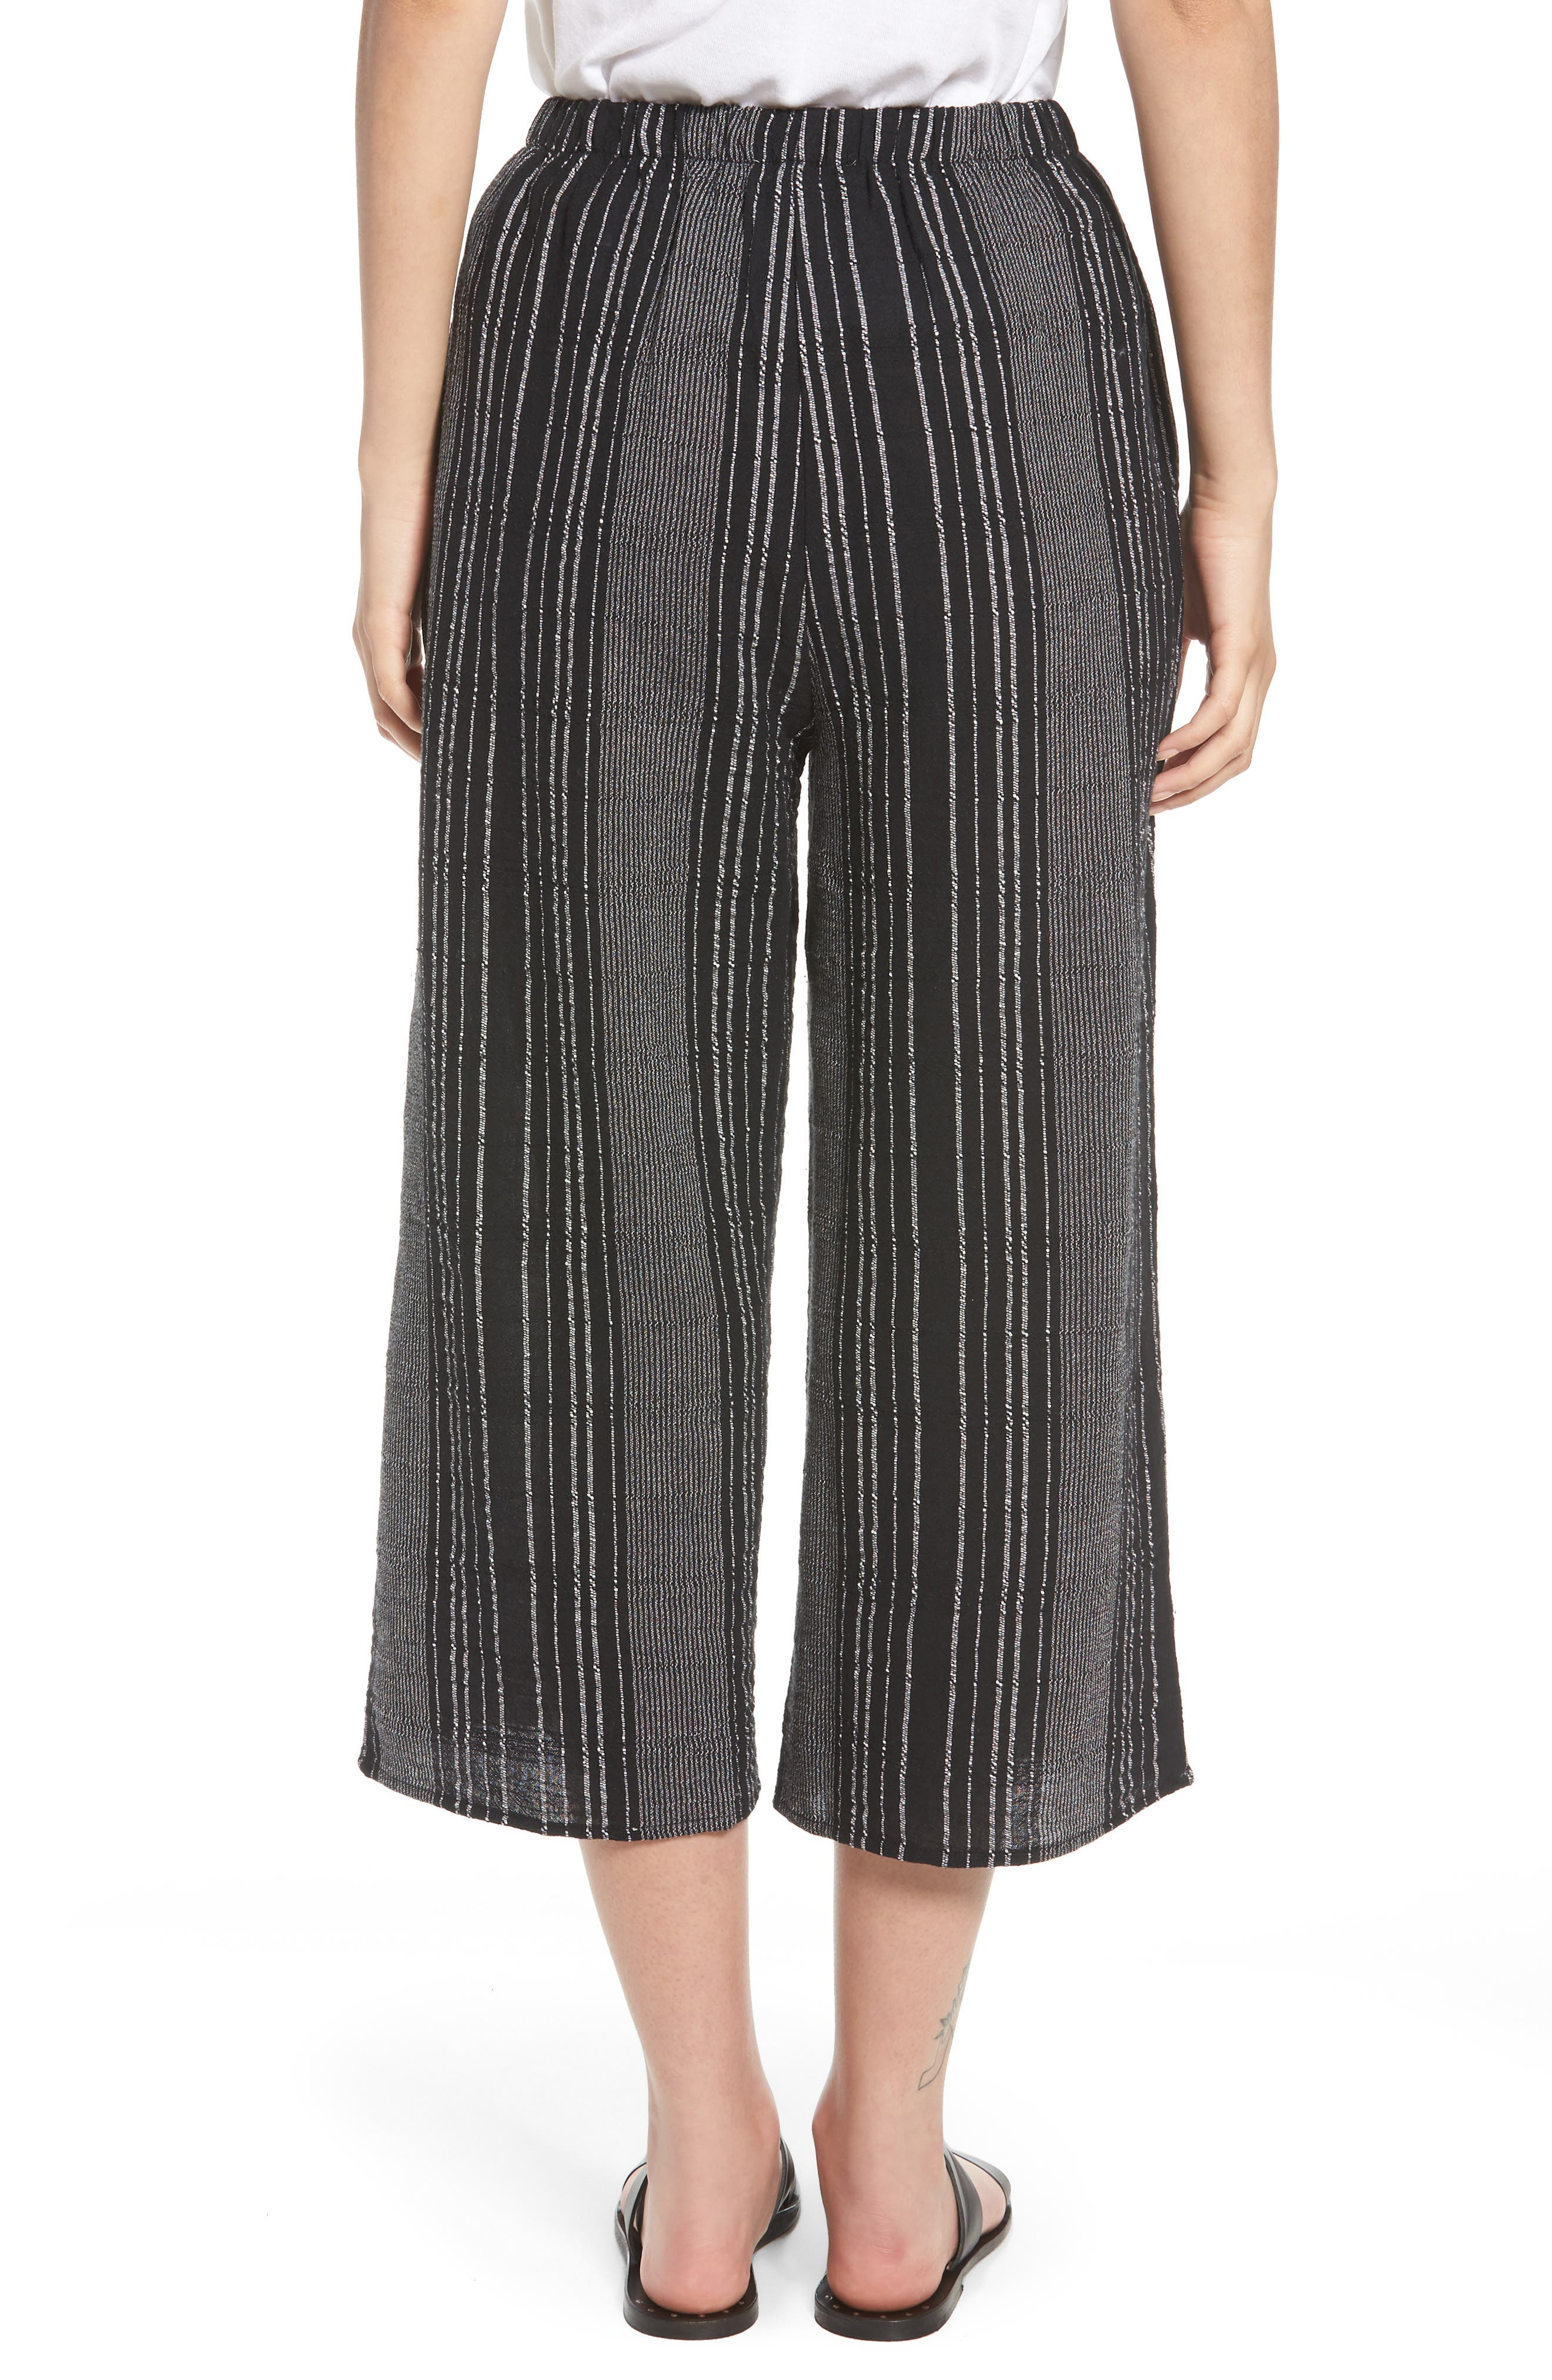 Bella Stripe Crop Pants,                             Alternate thumbnail 2, color,